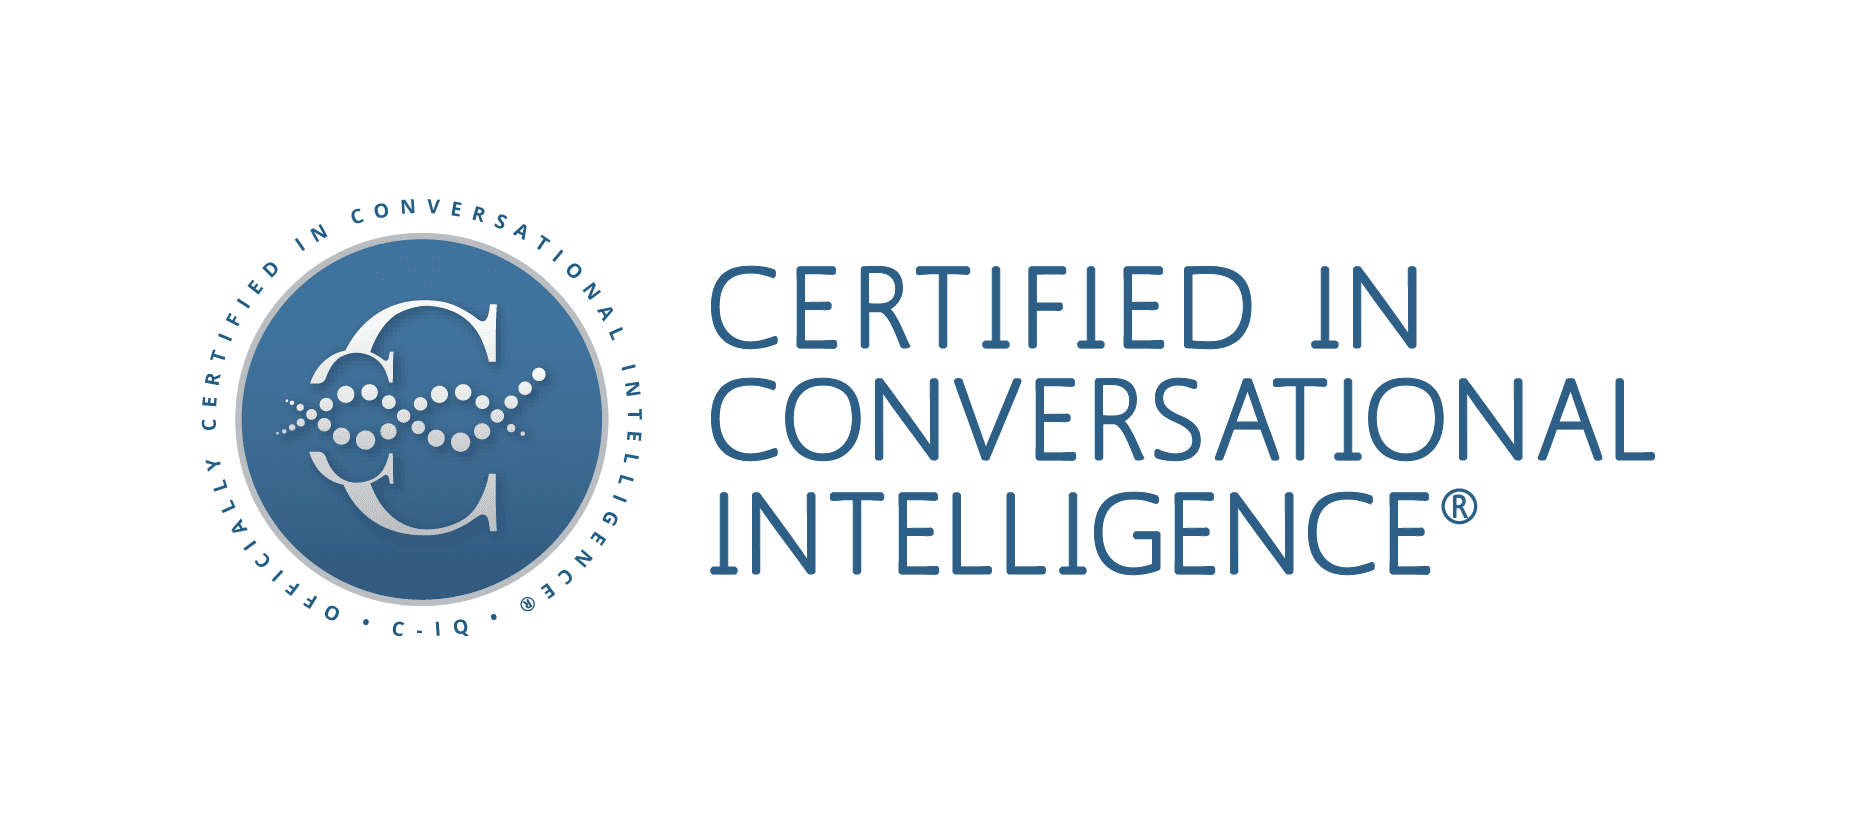 conversational-intelligence-logo